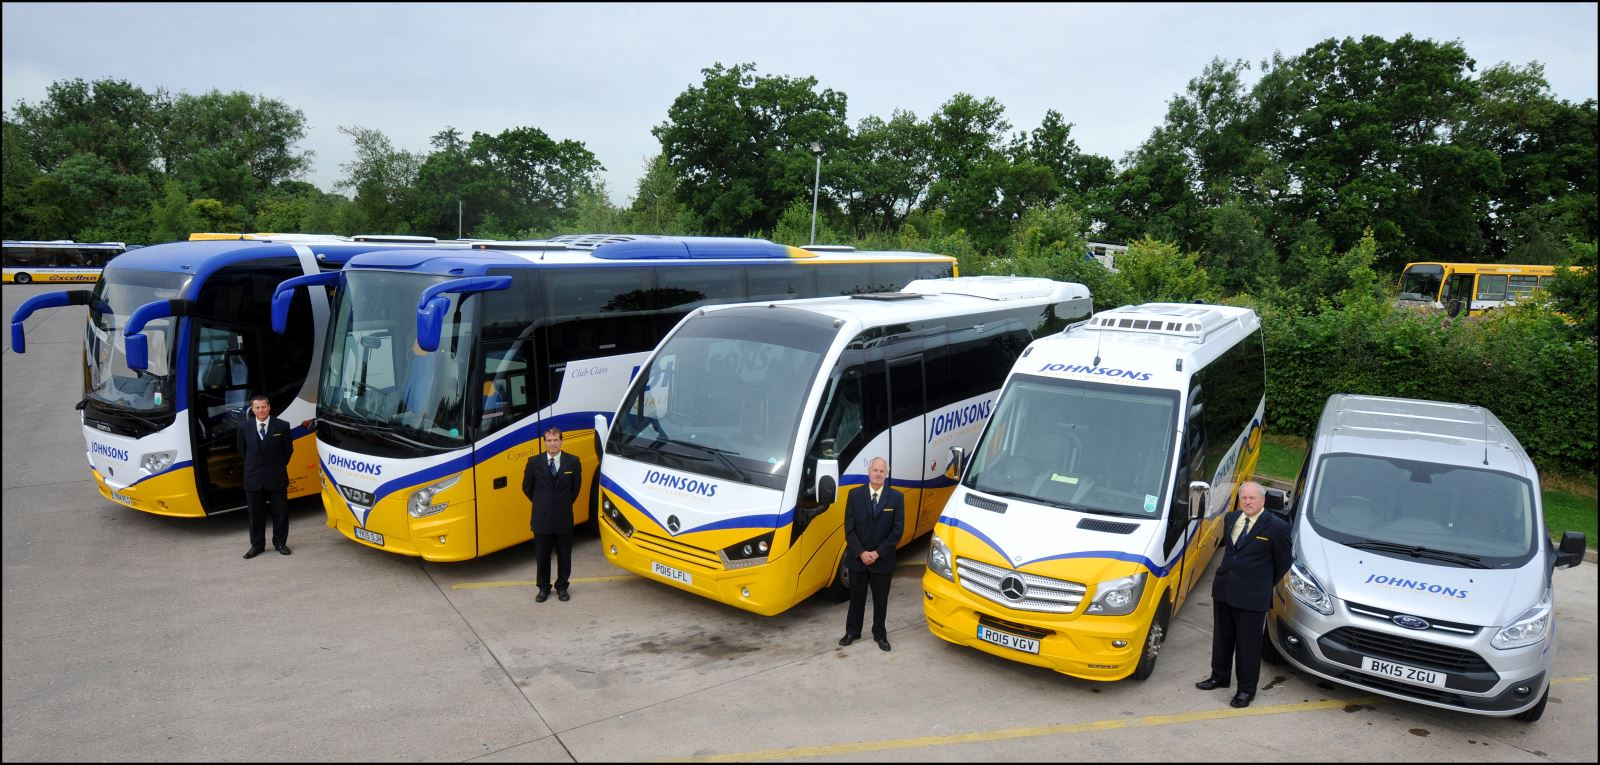 Large Fleet of Coaches